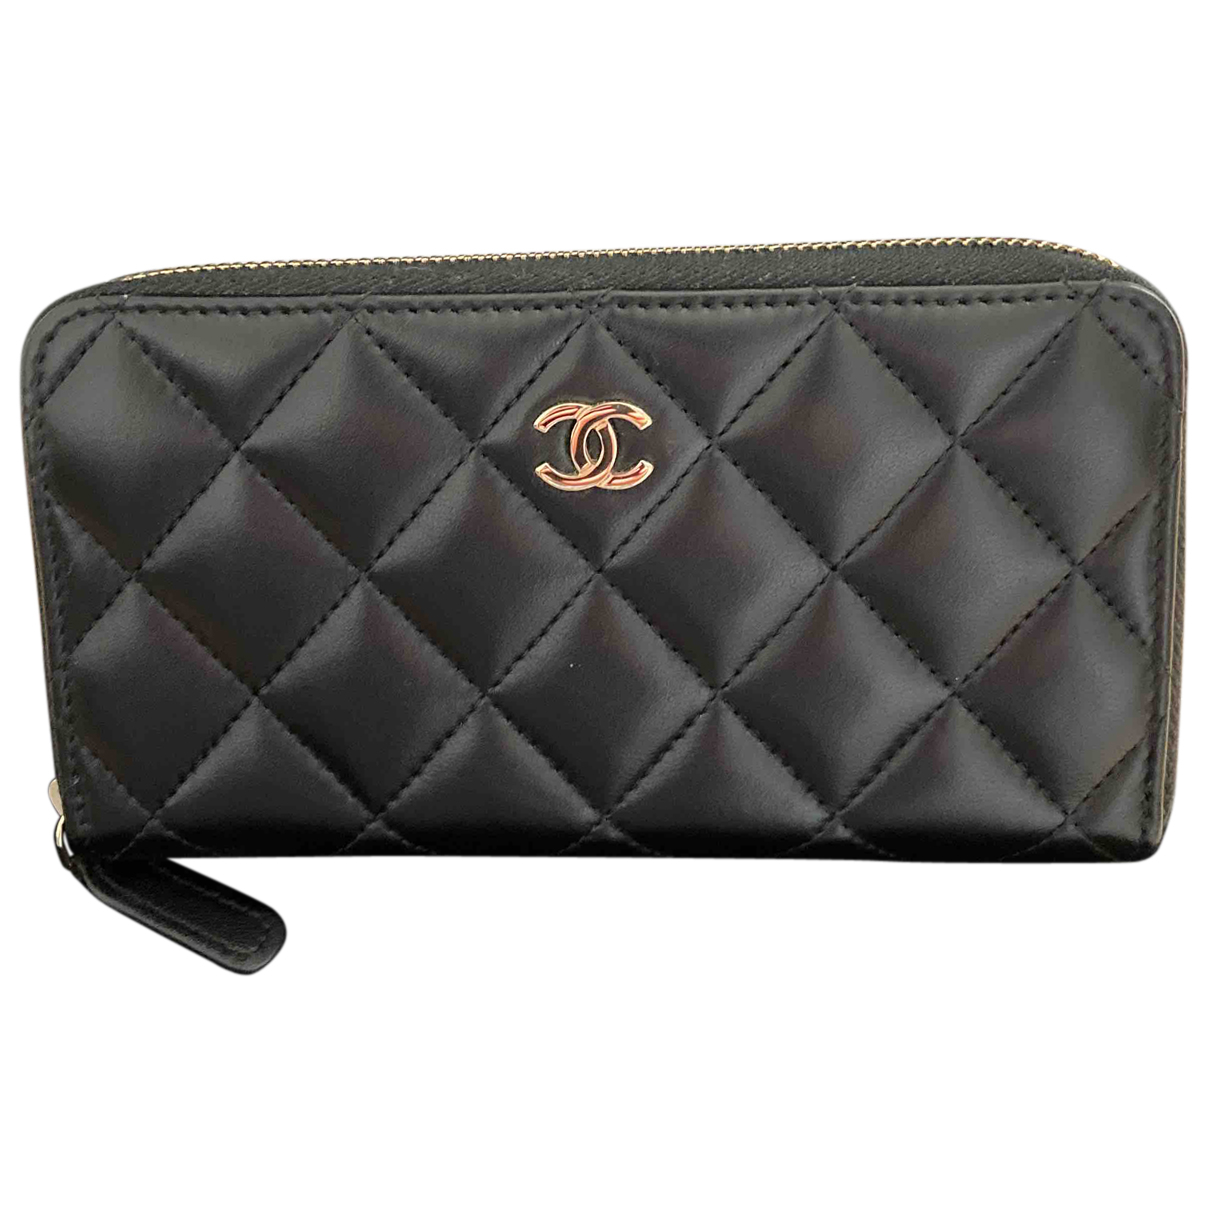 Chanel \N Kleinlederwaren in  Schwarz Leder